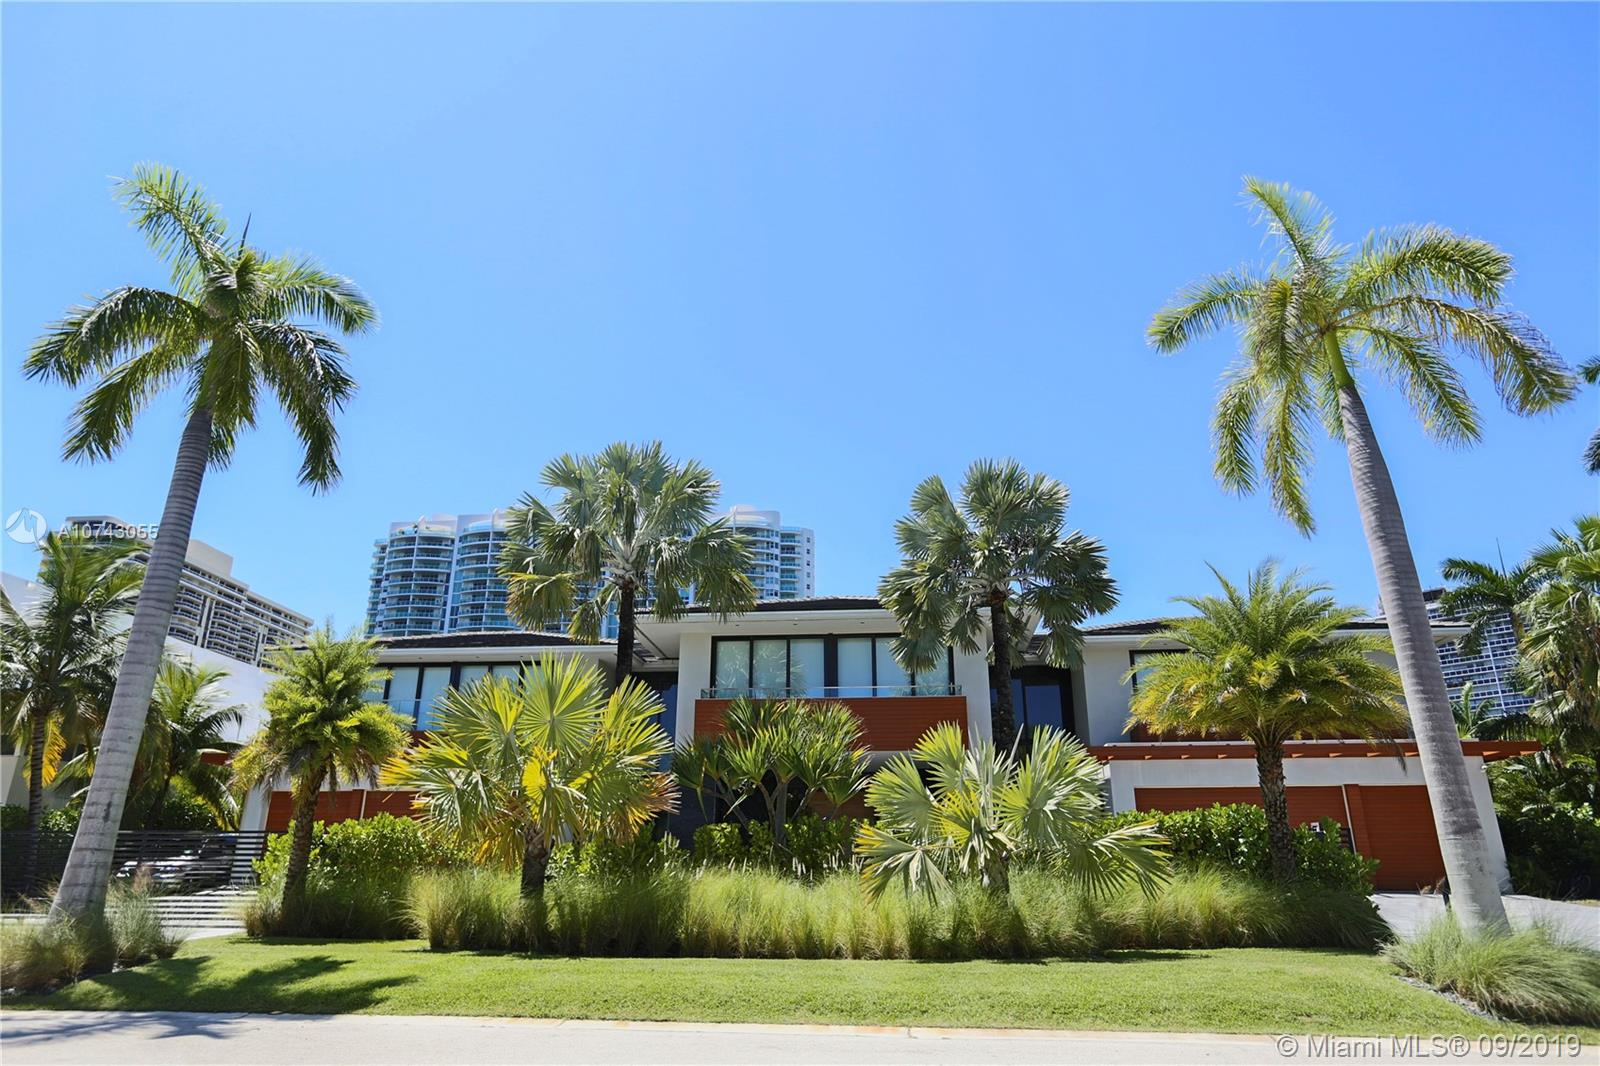 This rare opportunity to own one of the largest most luxurious Contemporary architecture home in Golden Beach. This modern 12bed/12.5bath home is situated on a unique oversized 22,688 SQ. FT. Intercostal Lot with 137.5 FEET ON THE WATER. This home features a personalized gym/spa with a Jacuzzi, Sauna and workout room, spectacular pool area with a beautiful gourmet kitchen, 137.5 feet of dock with a jet ski lift. This home is equipped with a elevator, infinity pool with a circular driveway that gives you access to eight car garages. The postcard boat doc with this large canal access makes it defiantly worth your visit.